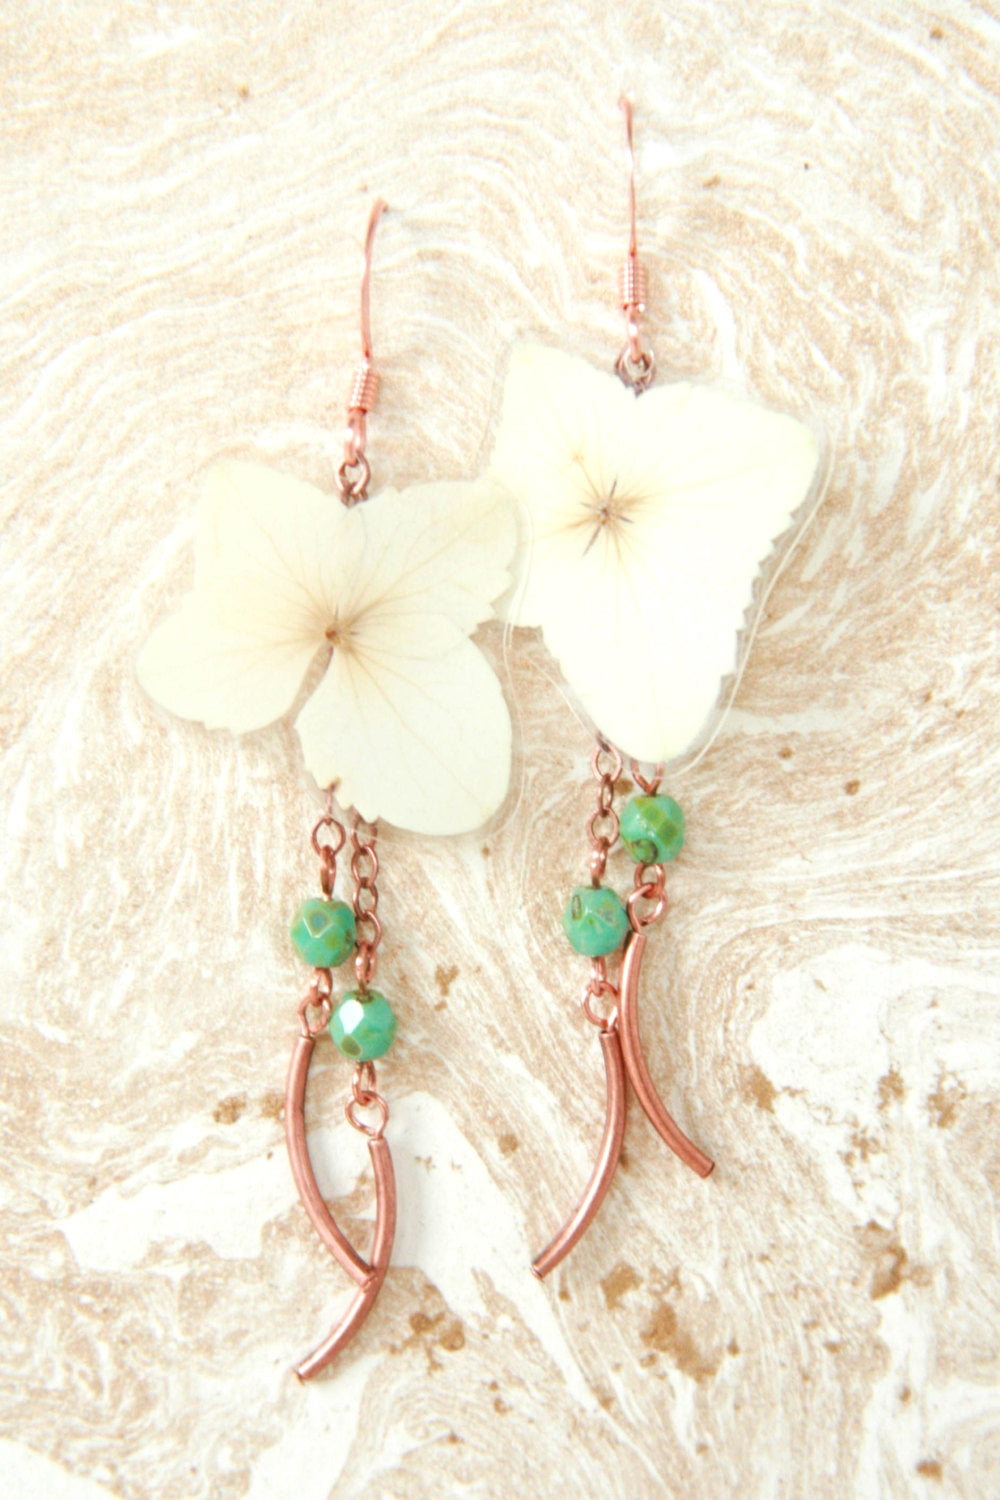 White Hydrangea Pressed Flower Earrings with Copper & Turquoise Glass Beads